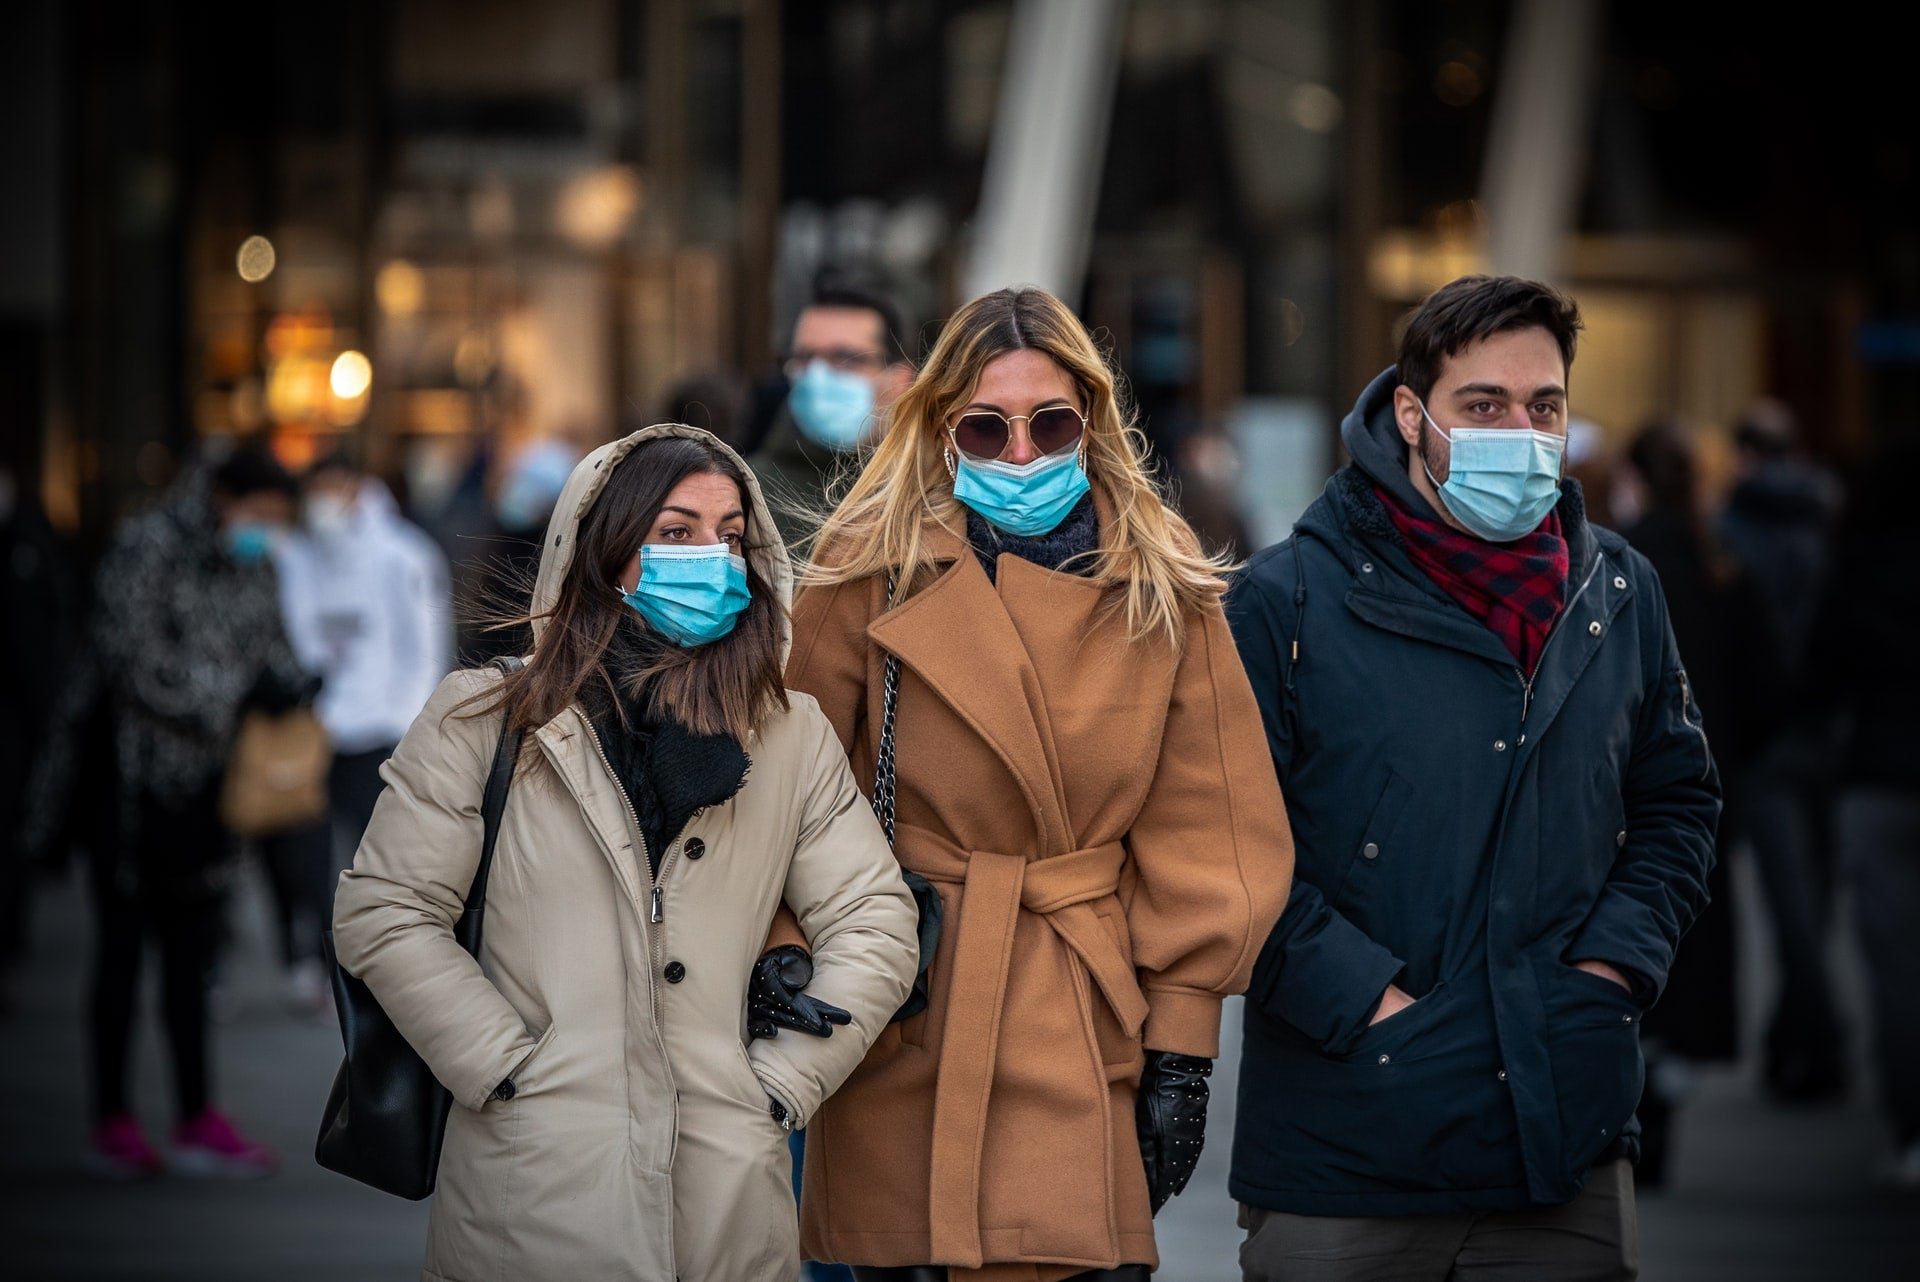 People in masks and overcoats walk through a public square.